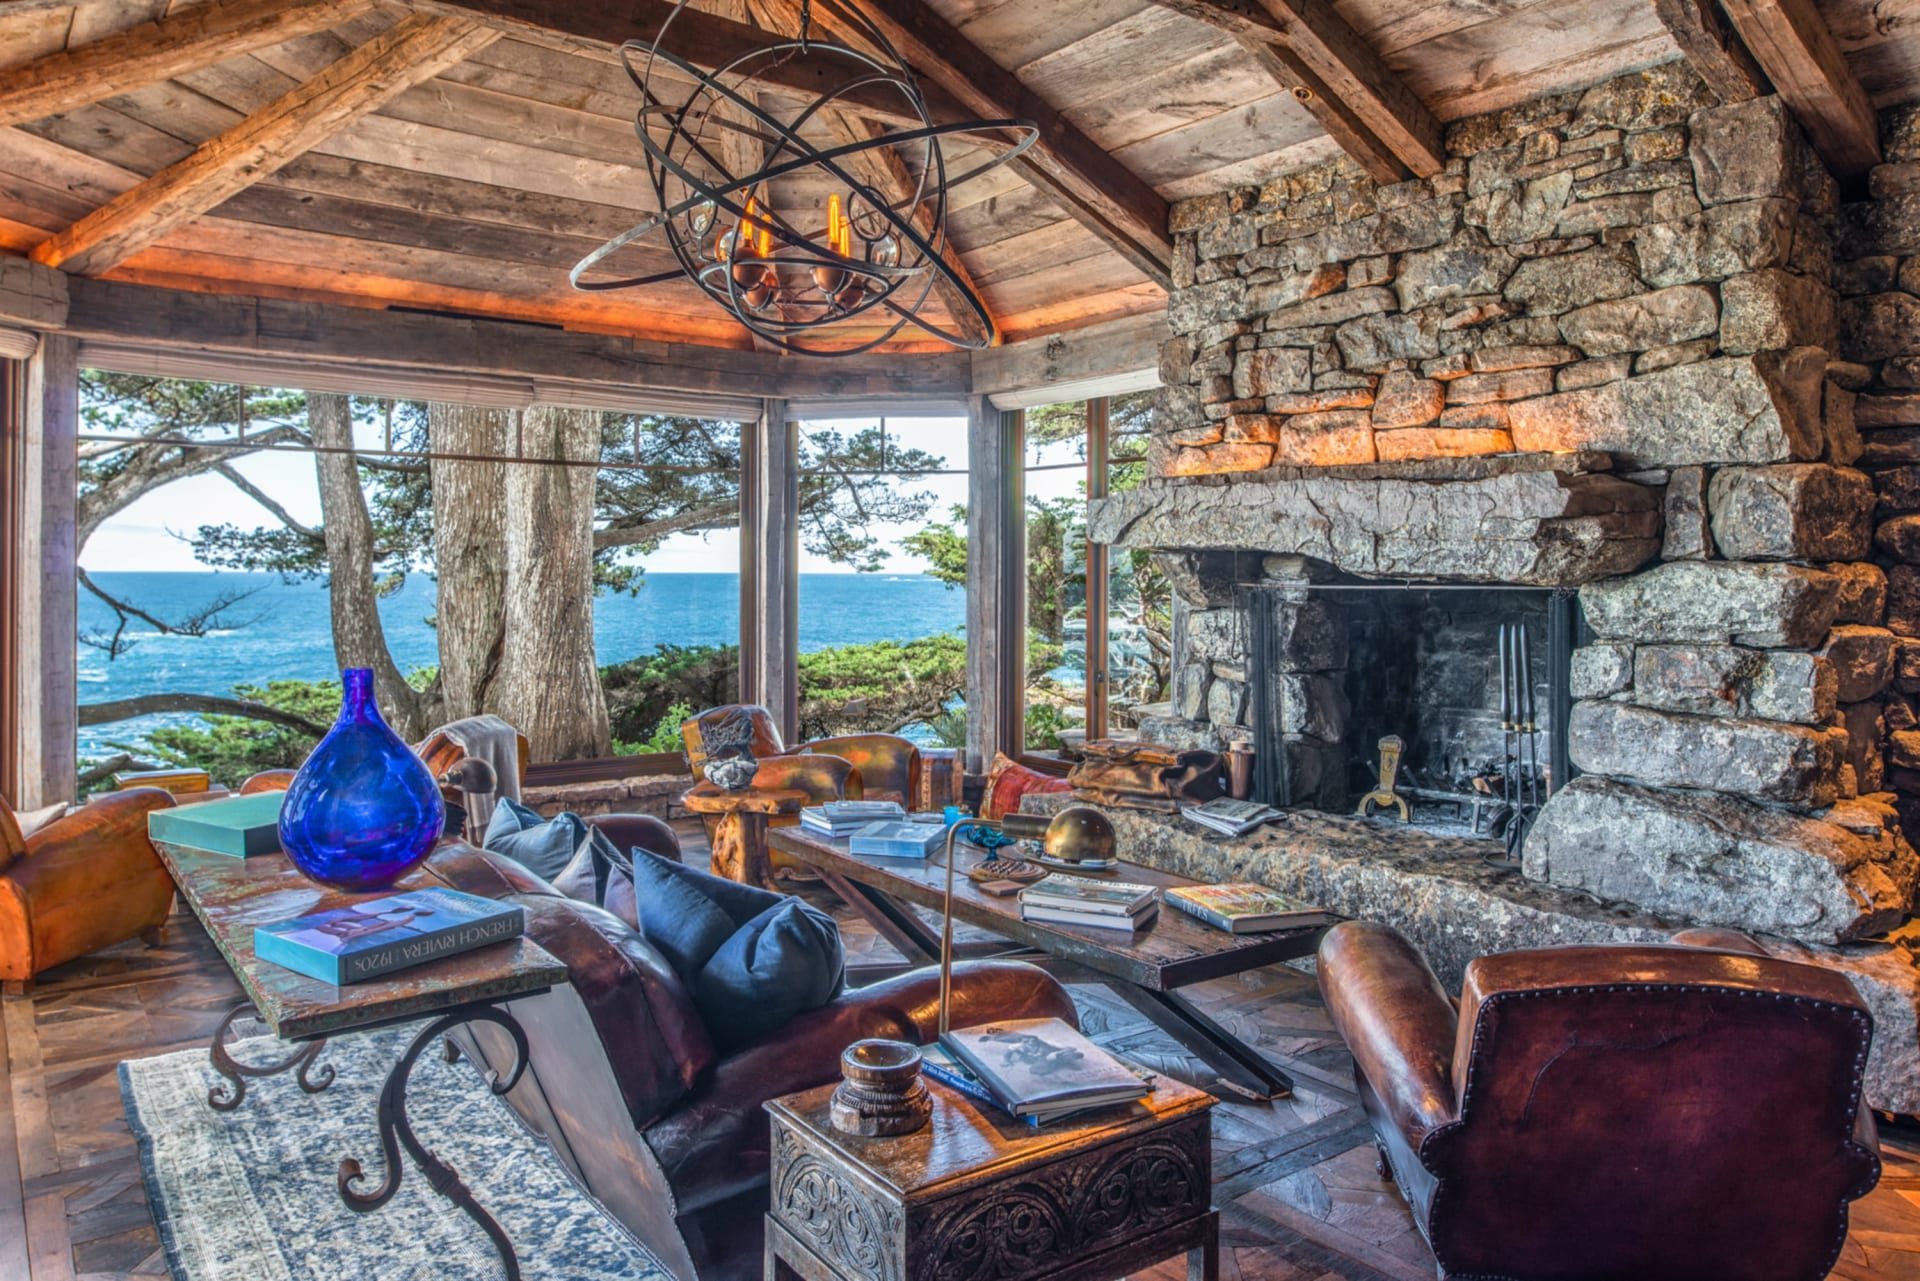 Carmel compound seen in 'Big Little Lies' and 'Basic Instinct' asks $52 million